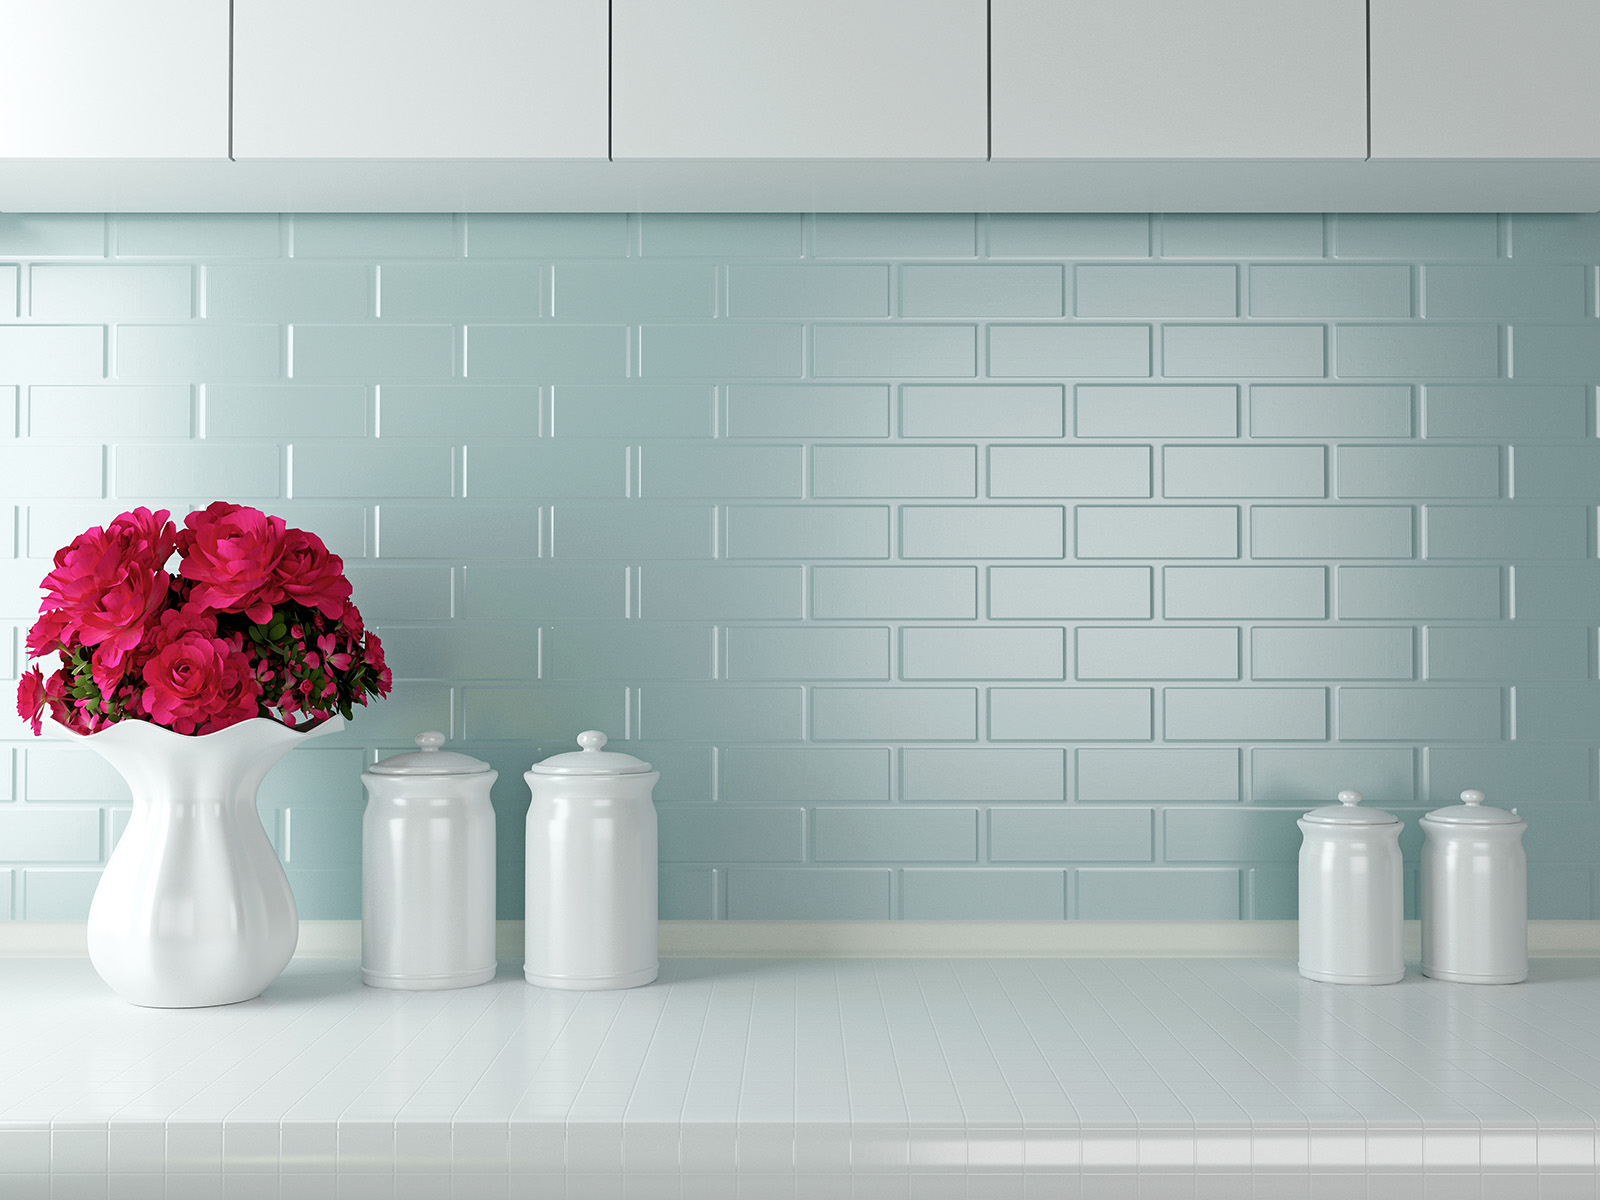 Wall decorated with vases and cups 50946